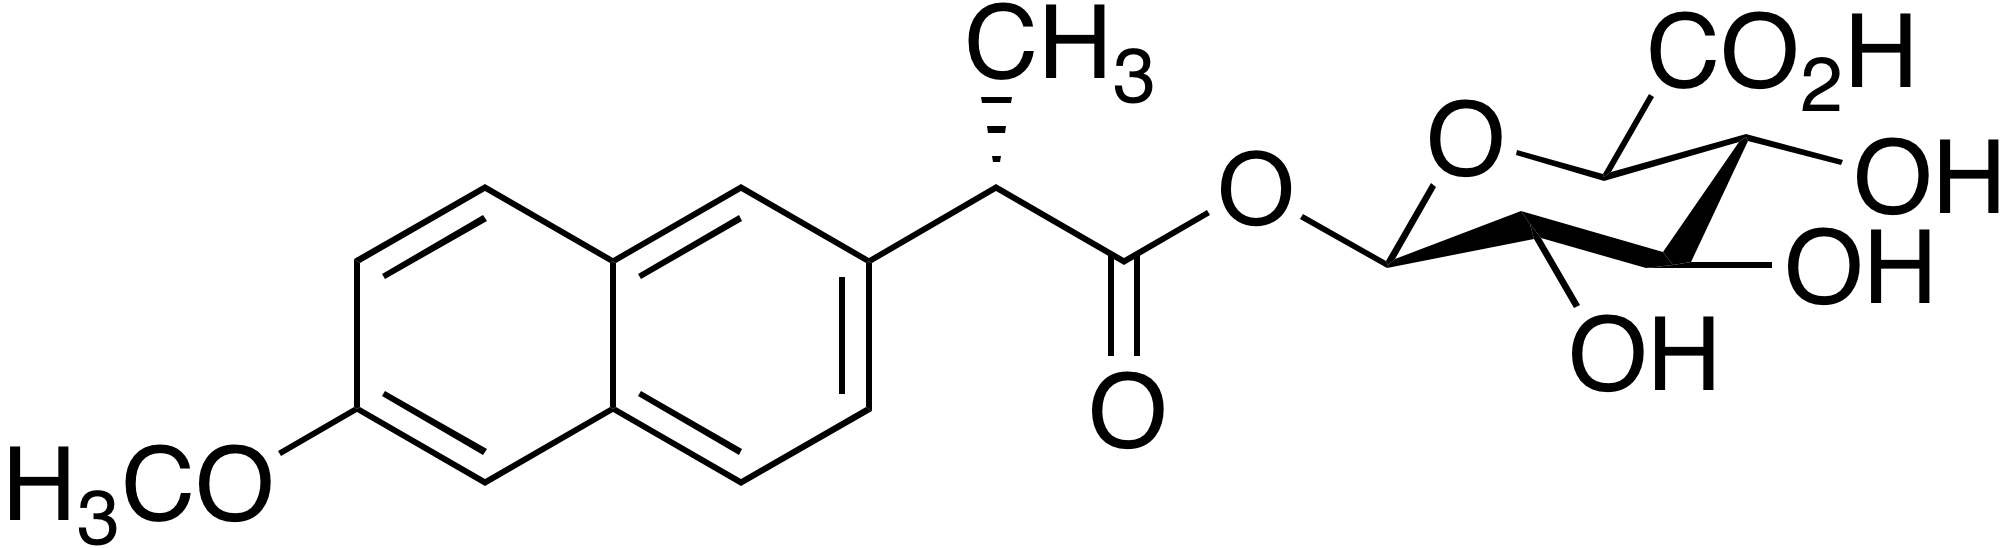 (S)-Naproxen acyl-β-D-glucuronide